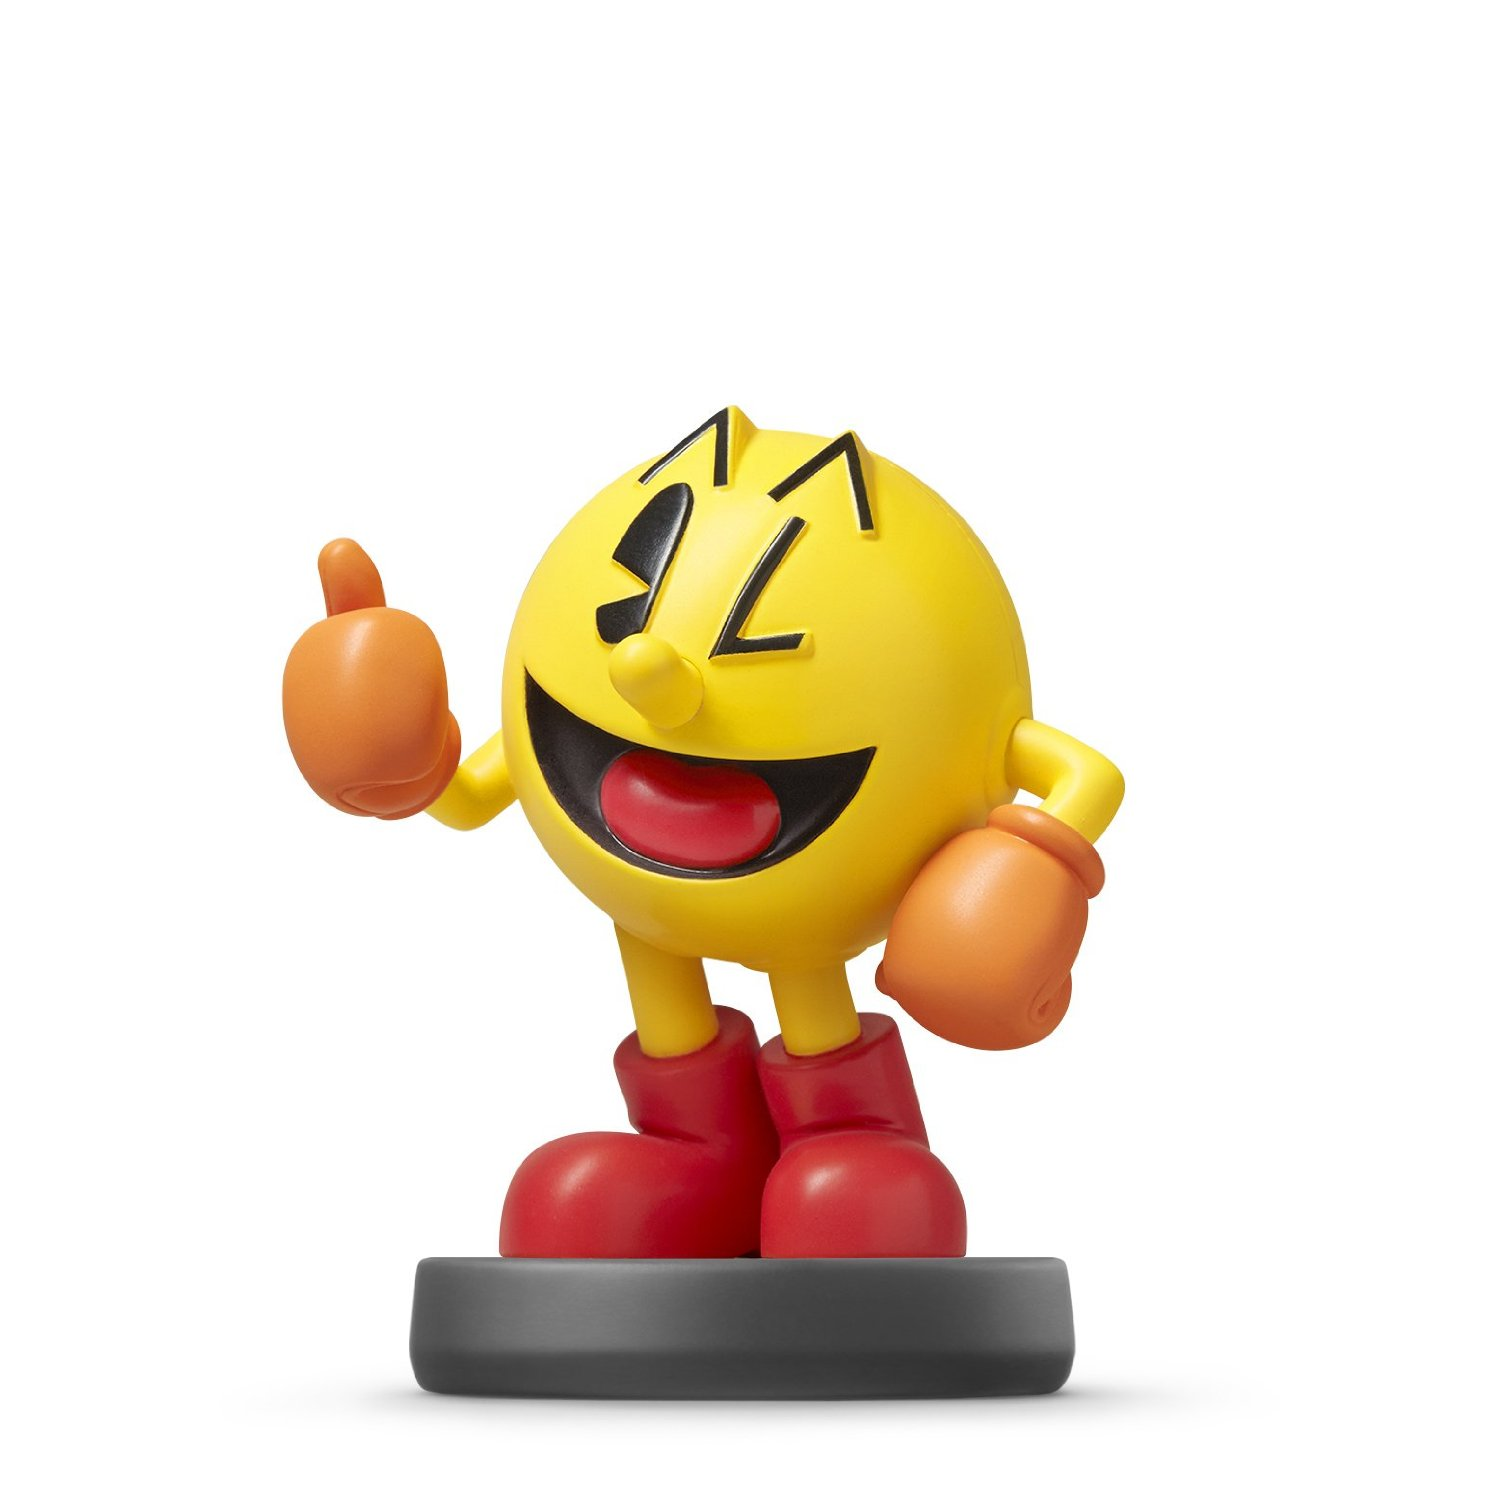 Reminder: Amazon's new system for selling the next amiibo kicks off today